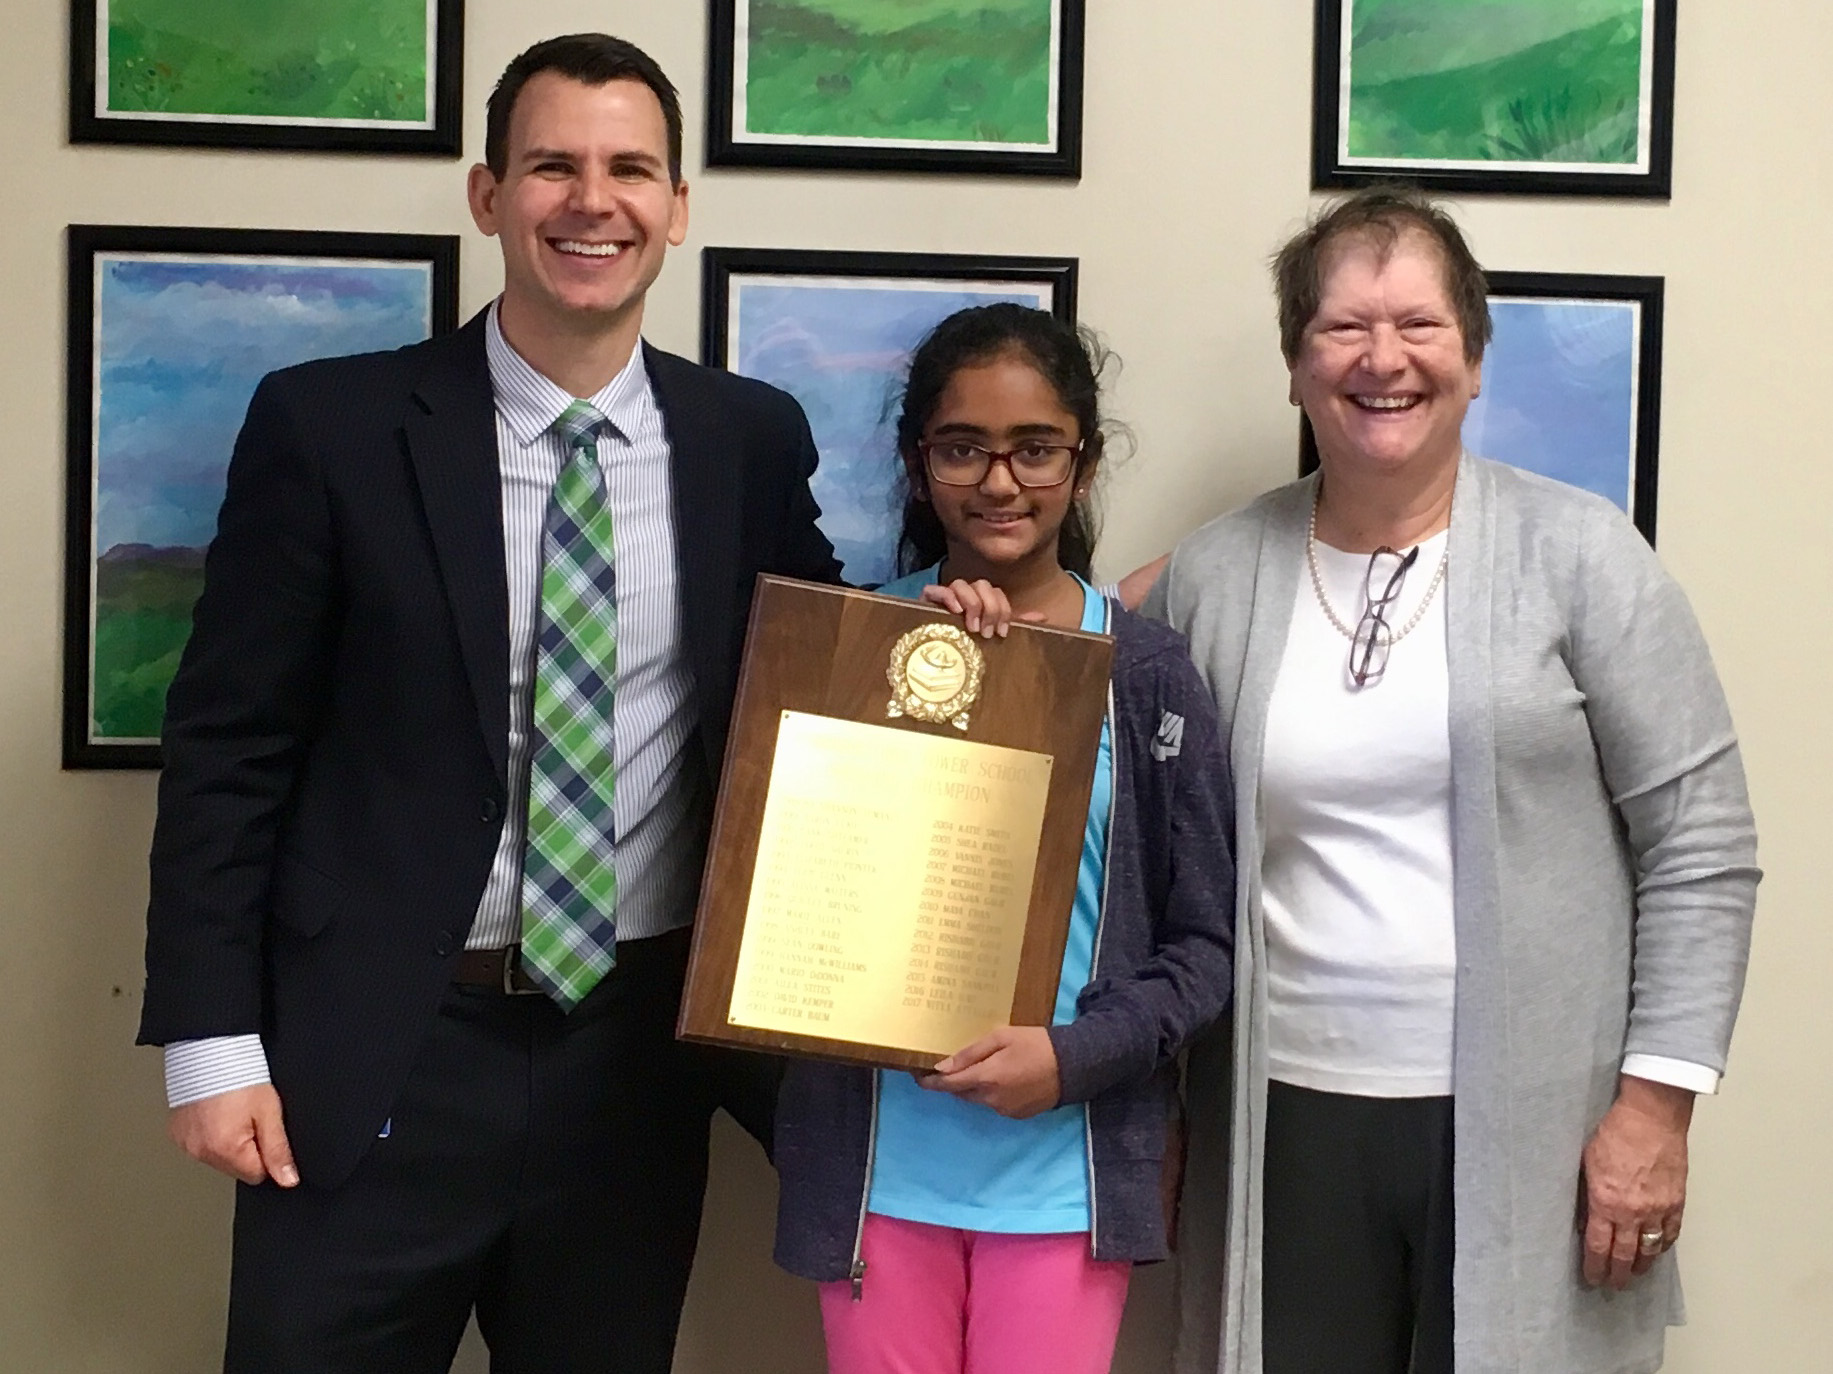 Lower School Spelling Bee Champion Moves On To The Jackson-Clay County Championship Spelling Bee